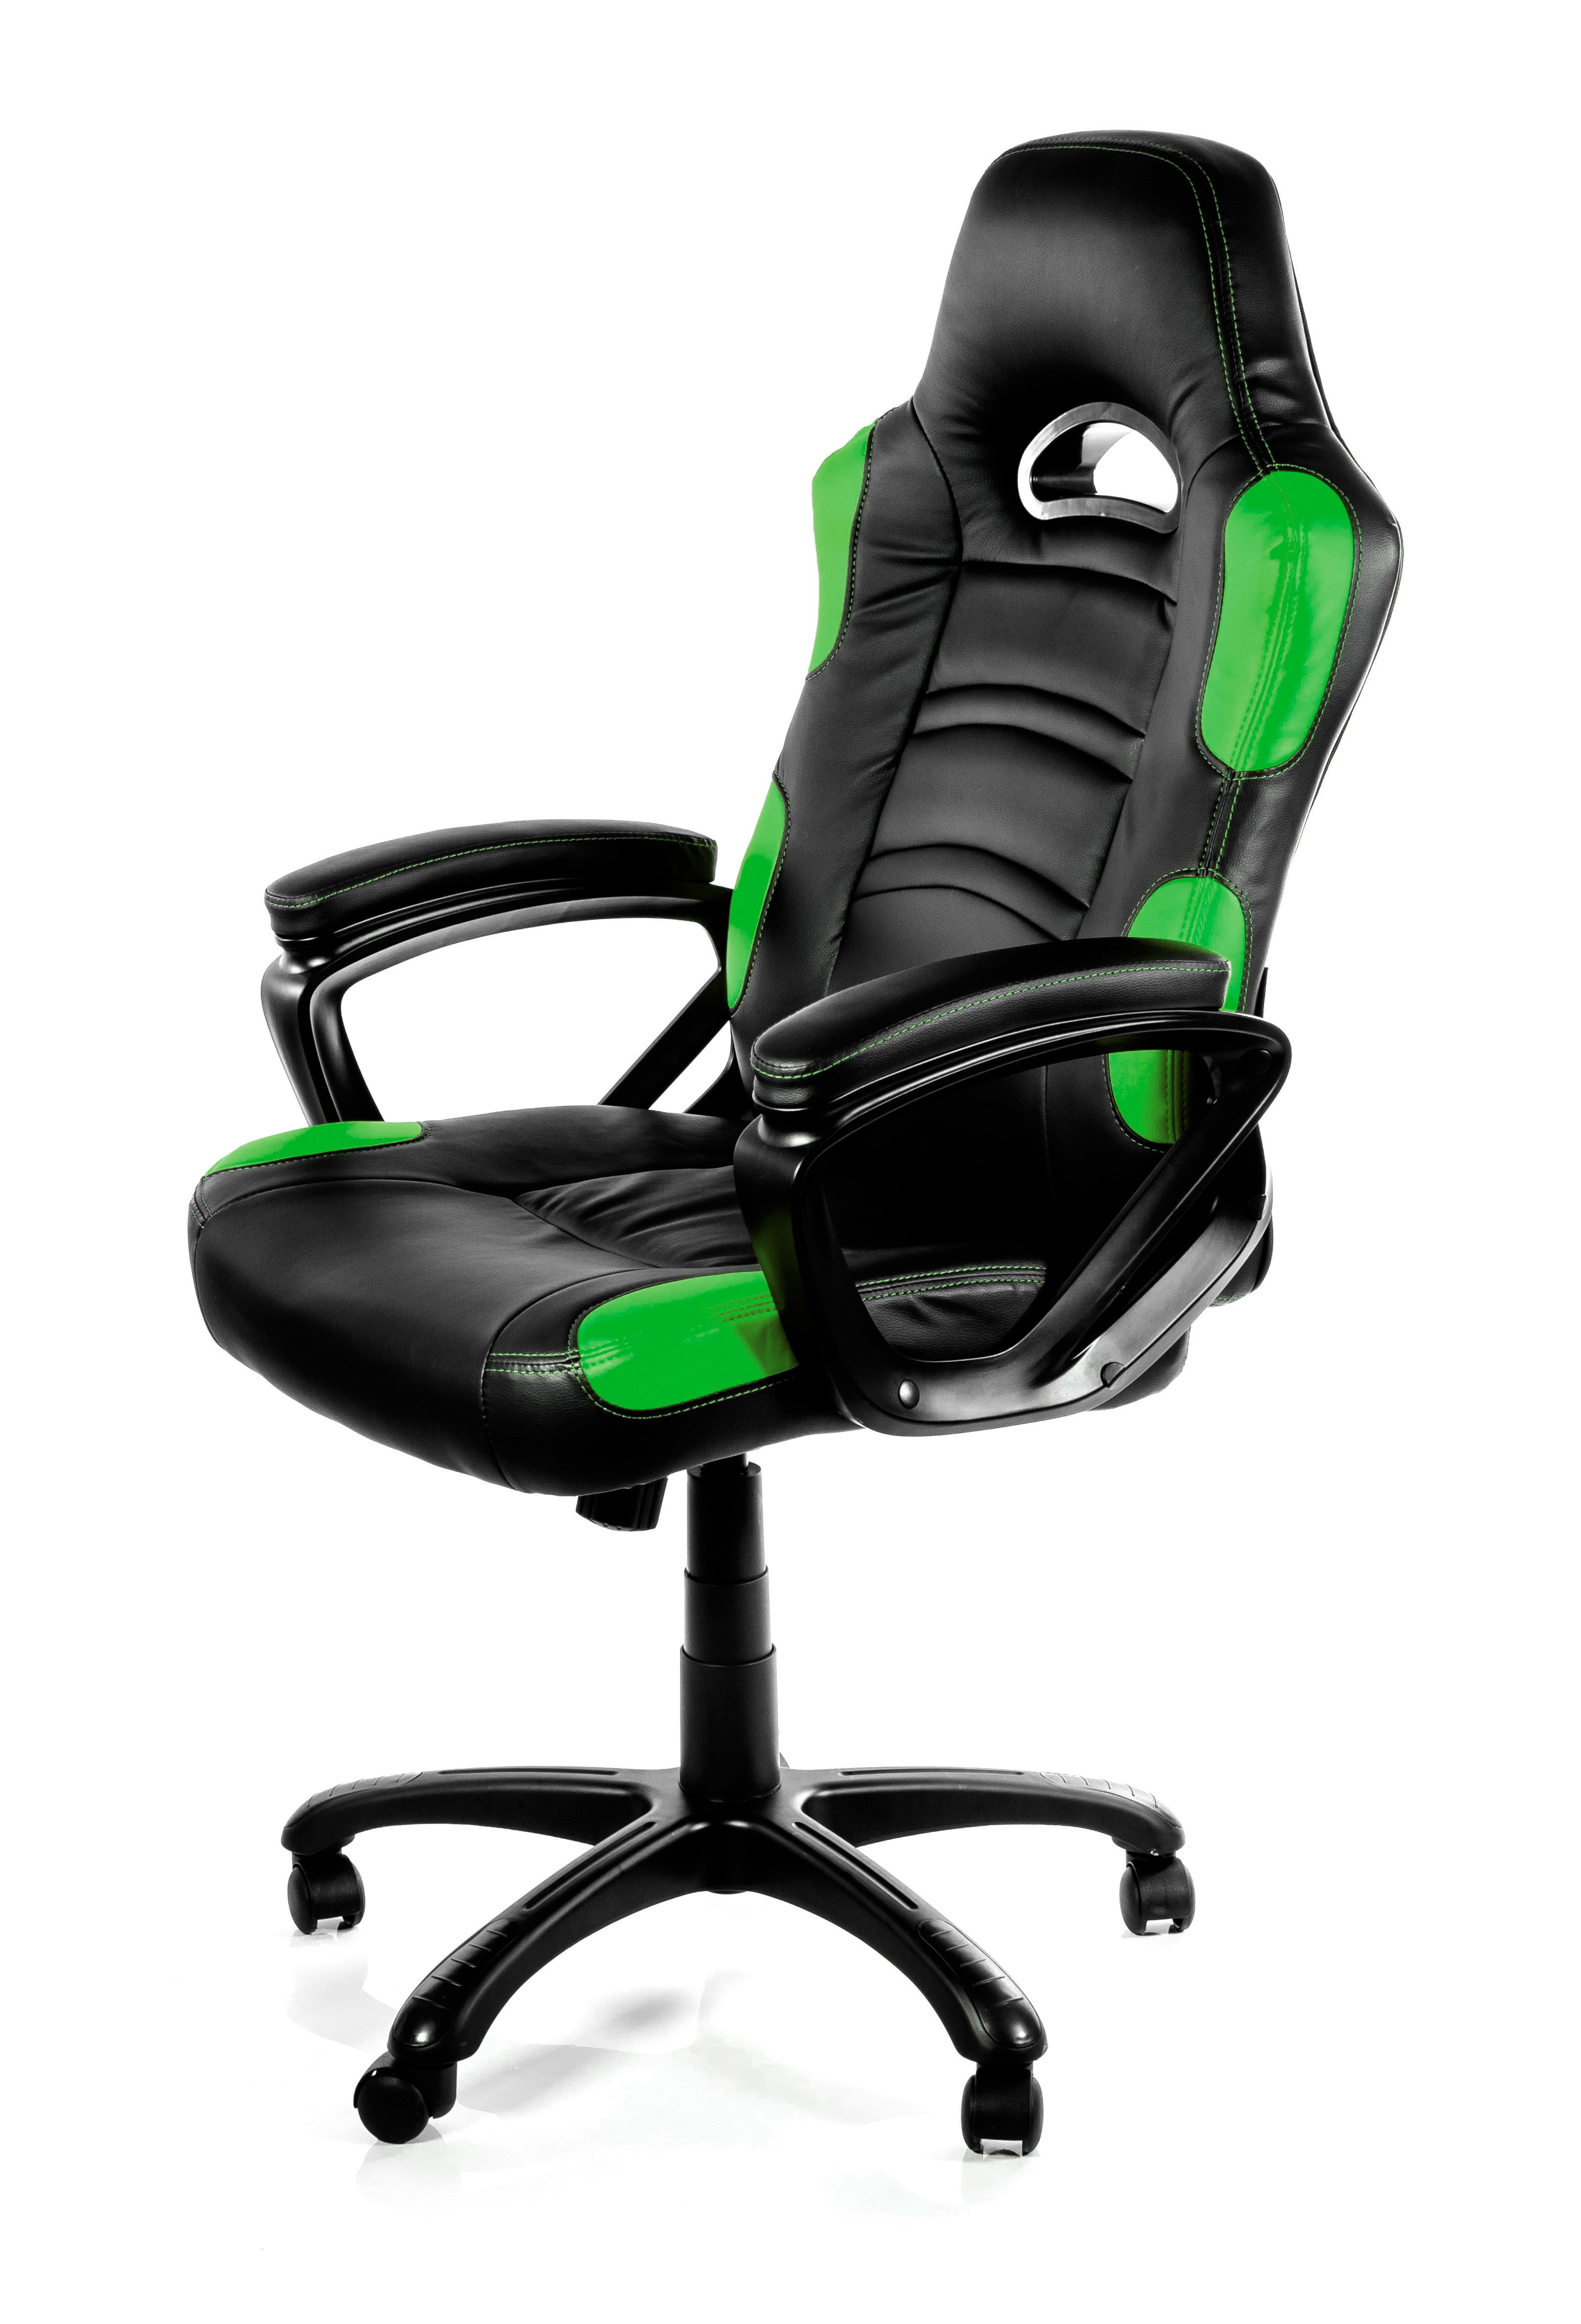 Image of Arozzi Enzo Universal gaming chair Padded seat